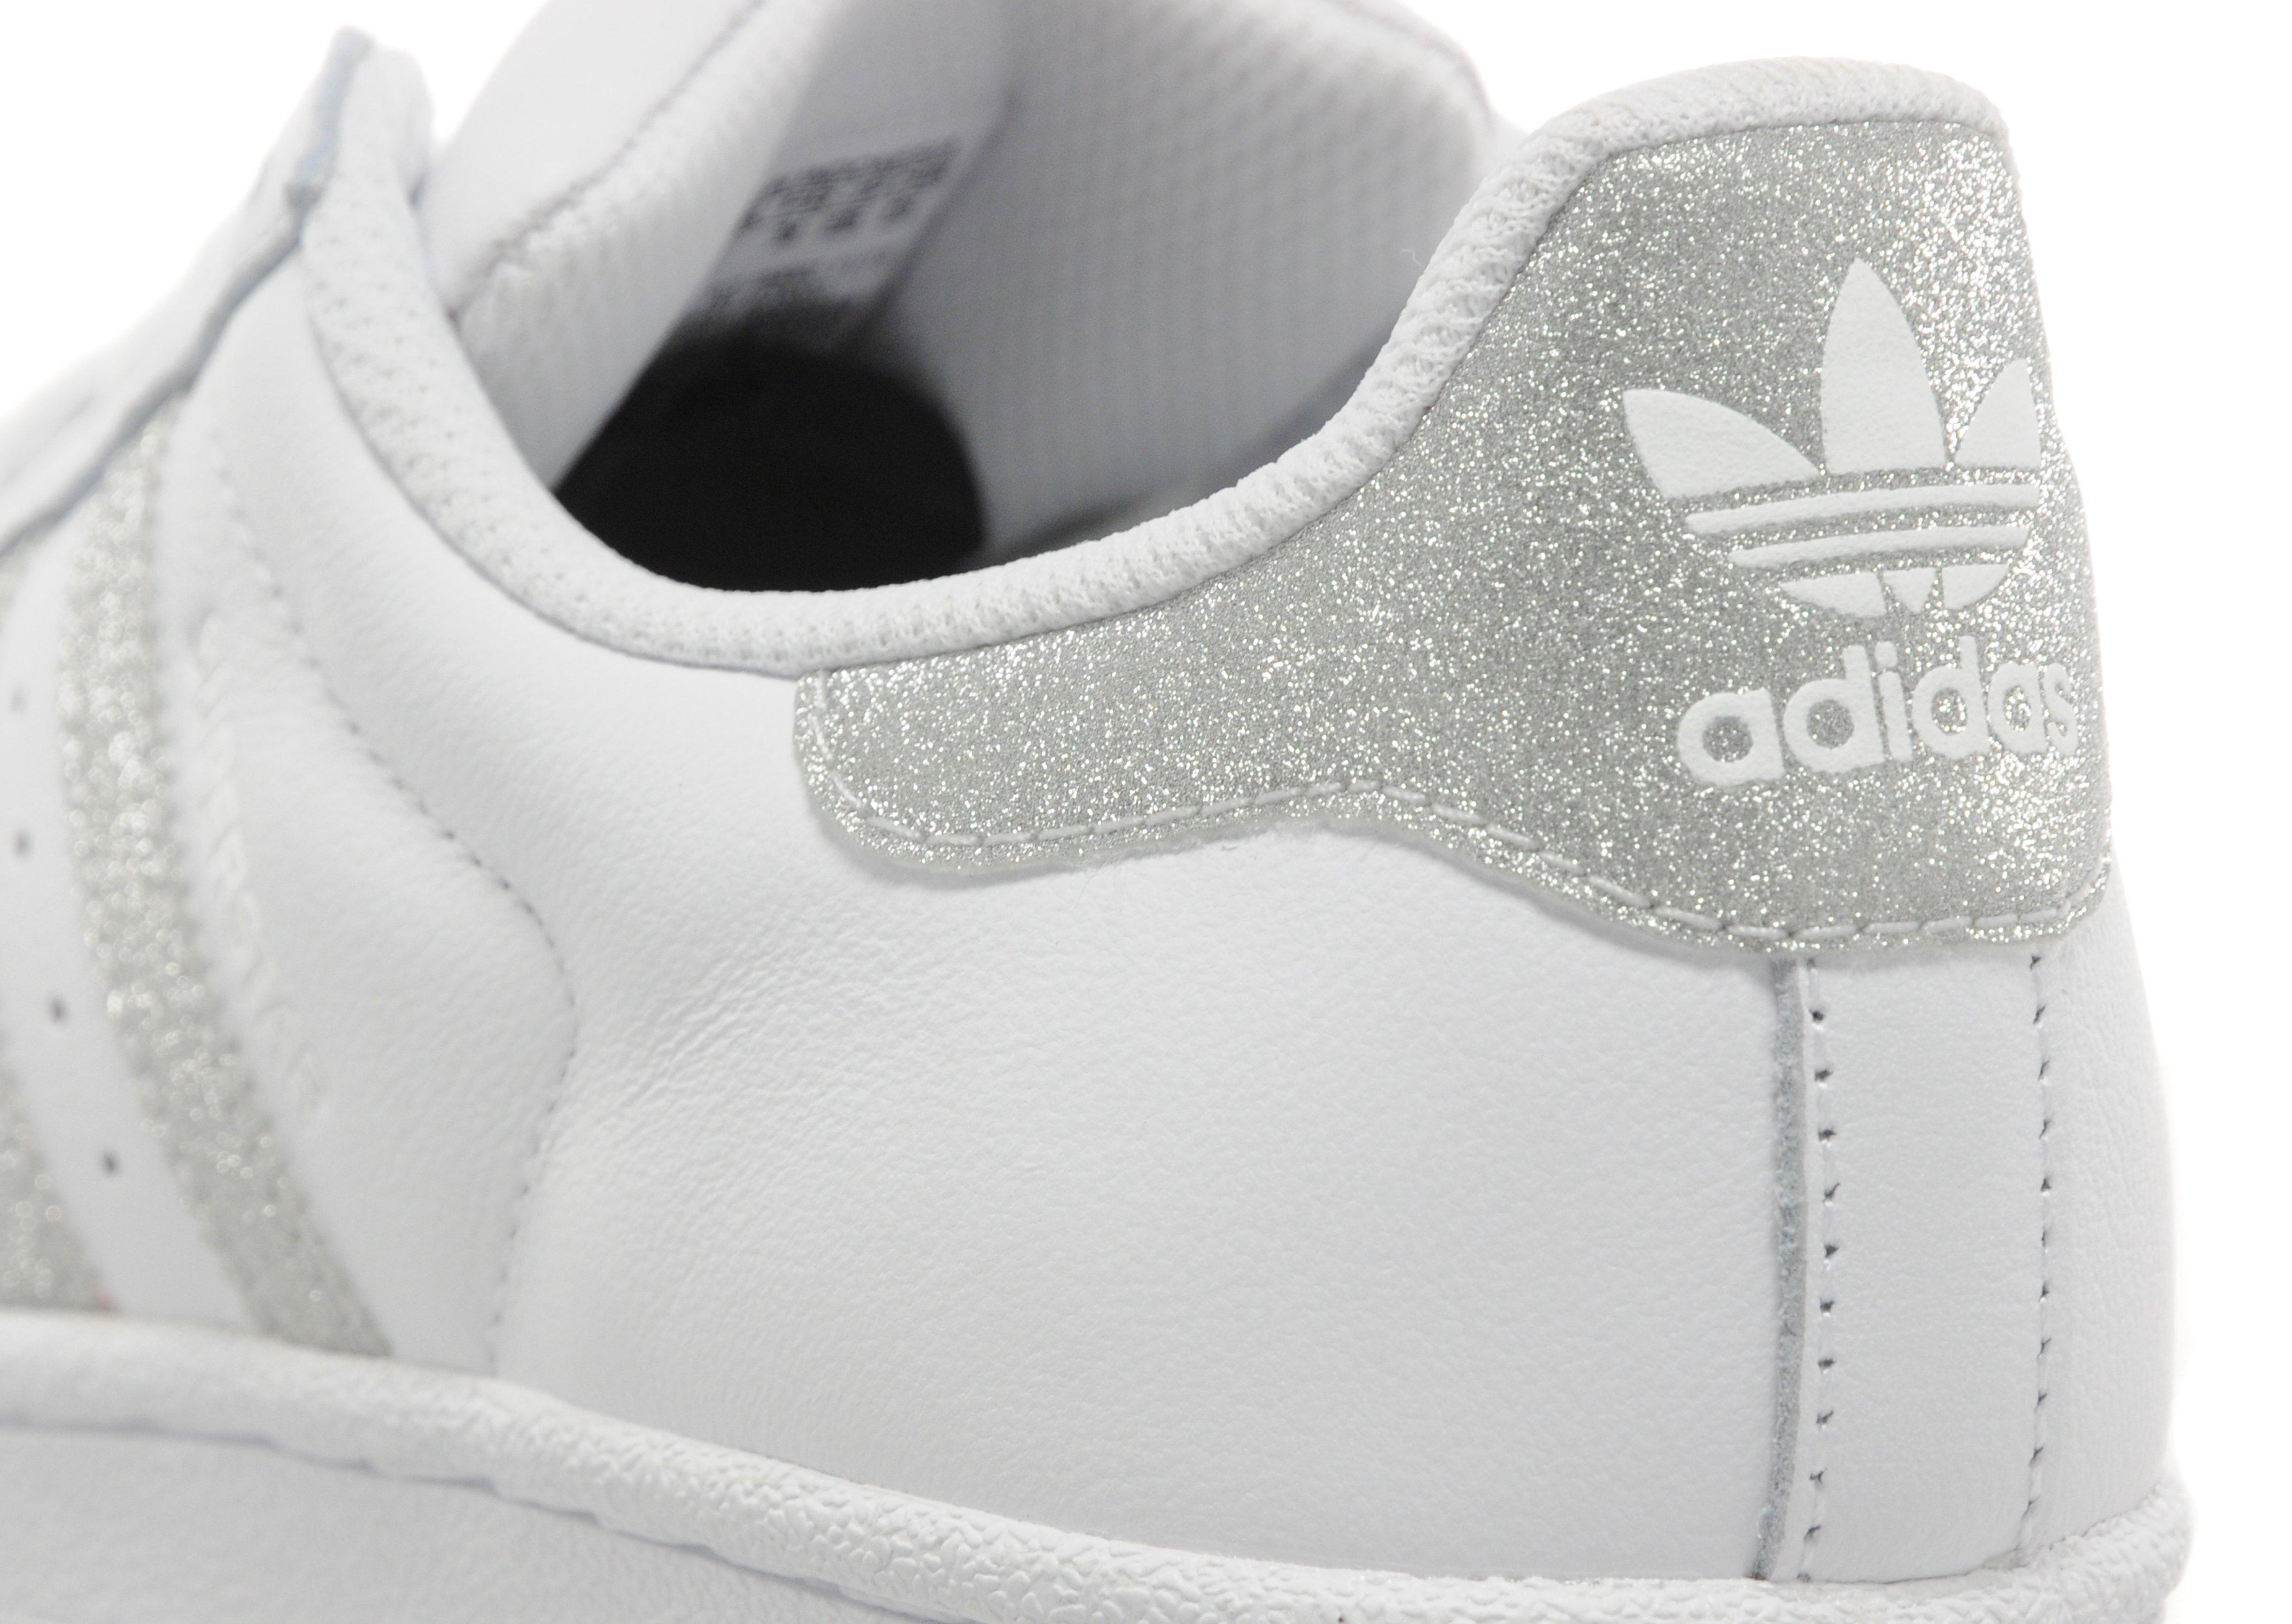 adidas superstar white and silver glitter. Black Bedroom Furniture Sets. Home Design Ideas